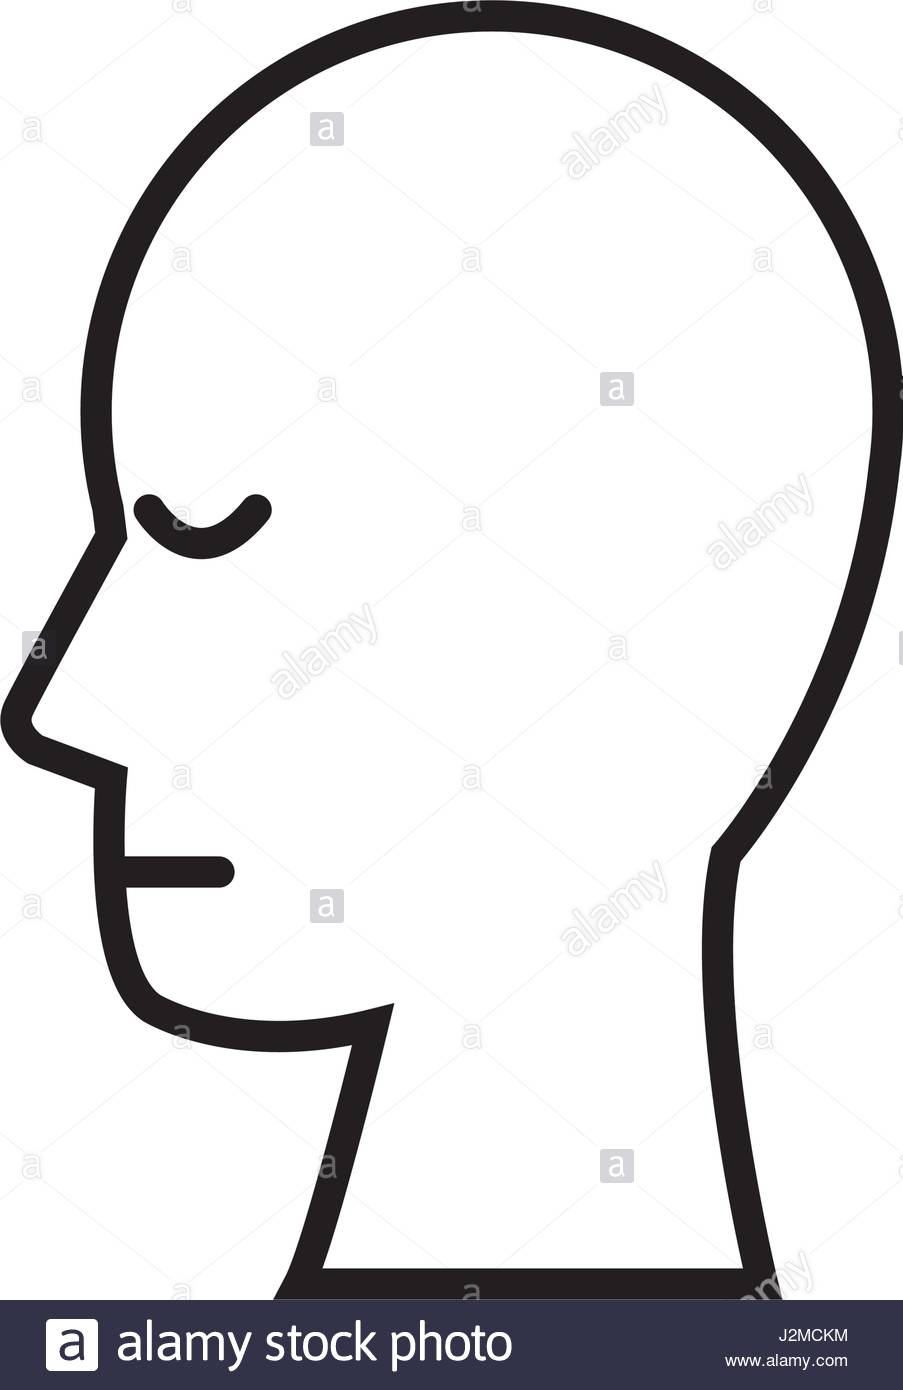 903x1390 Silhouette Head Human People Image Outline Stock Vector Art